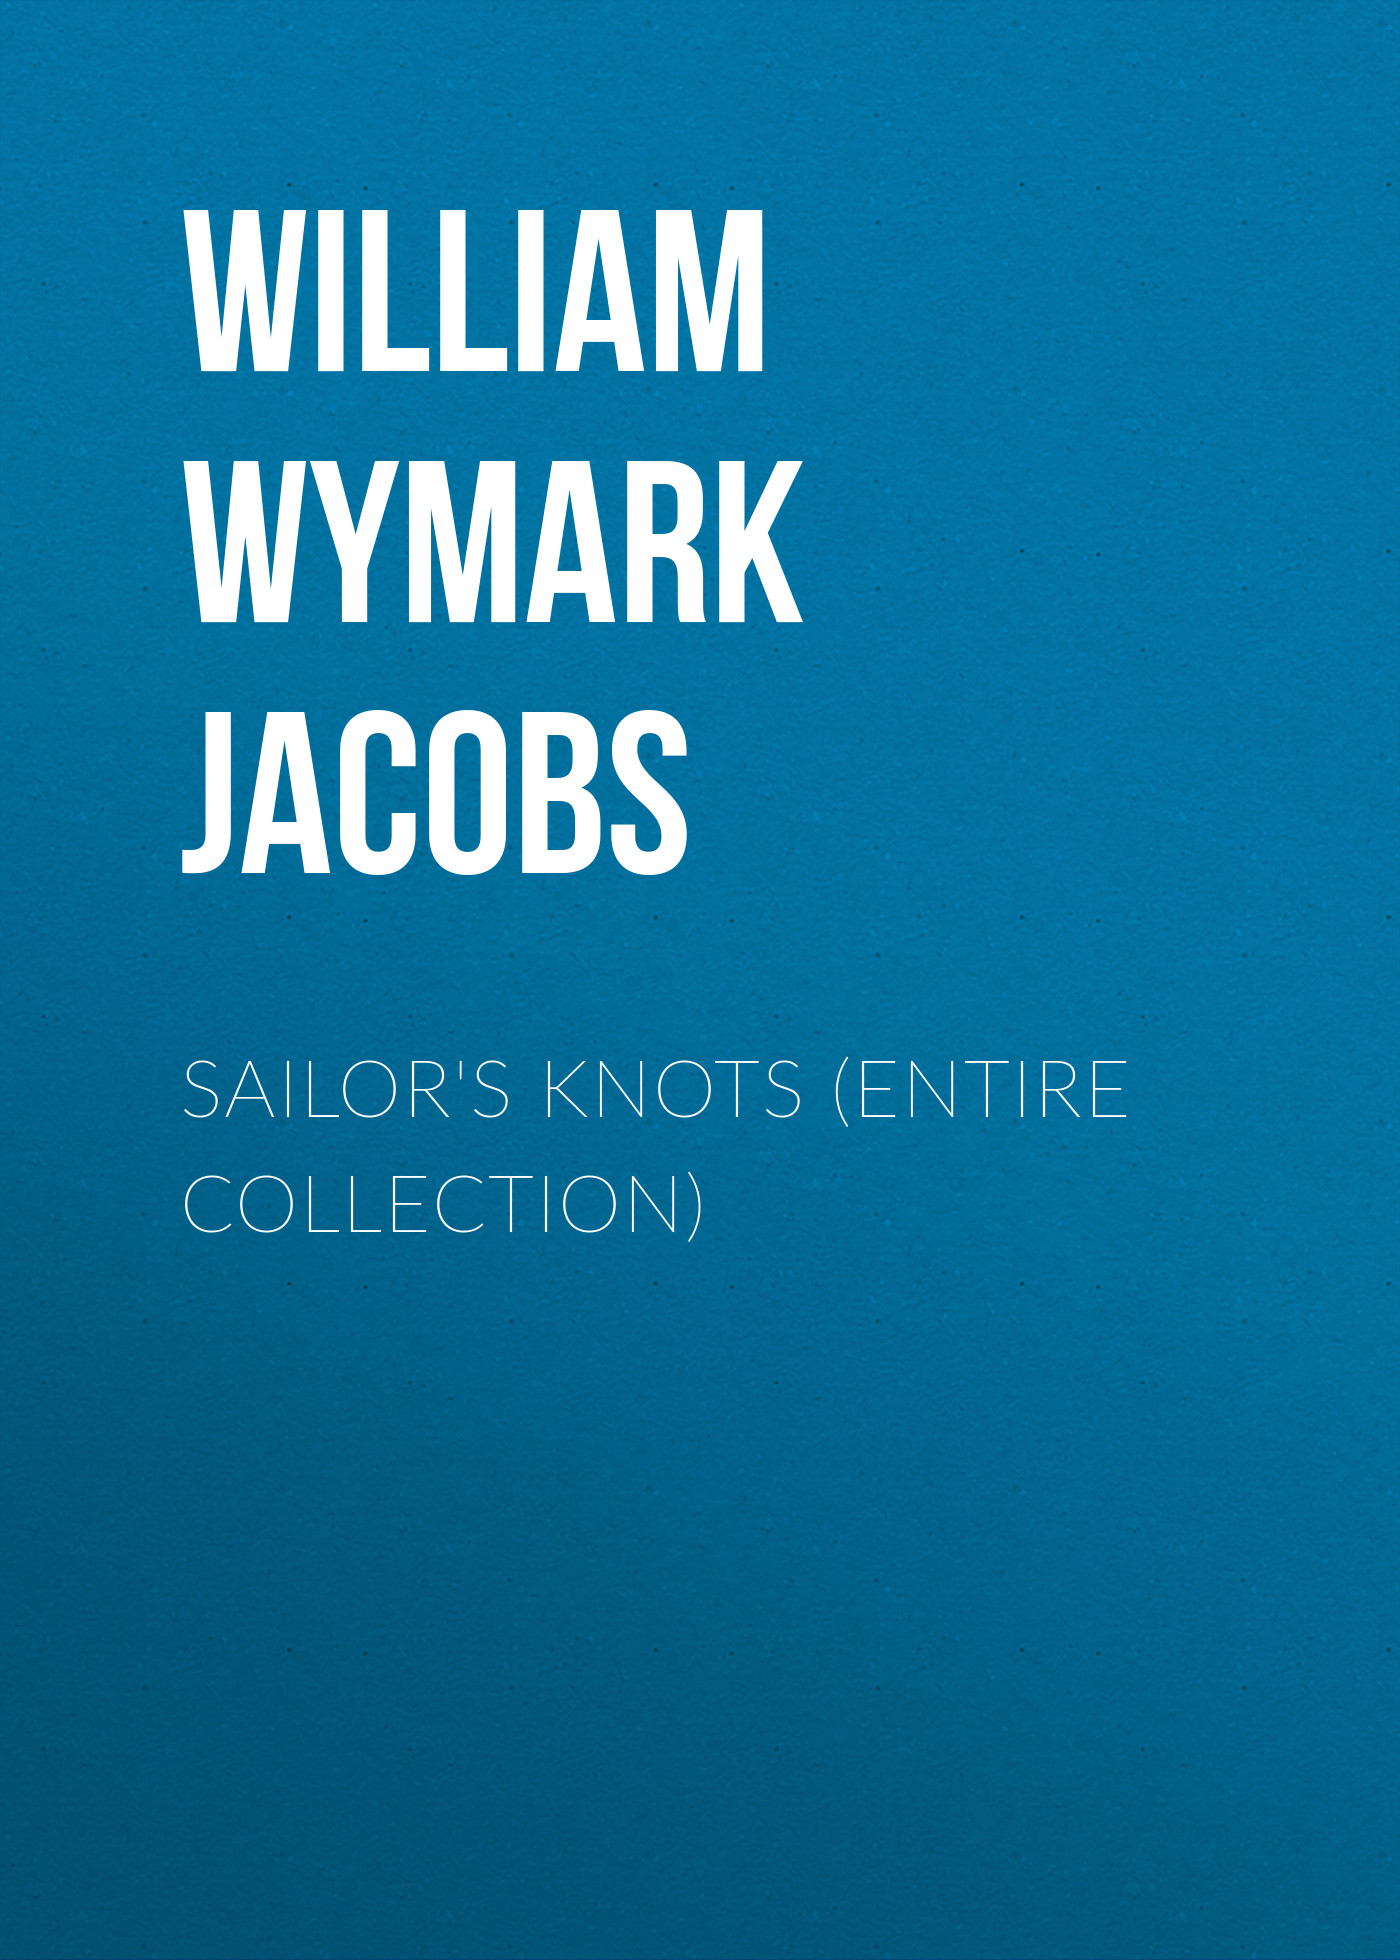 William Wymark Jacobs Sailor's Knots (Entire Collection) lowell ackerman blackwell s five minute veterinary practice management consult